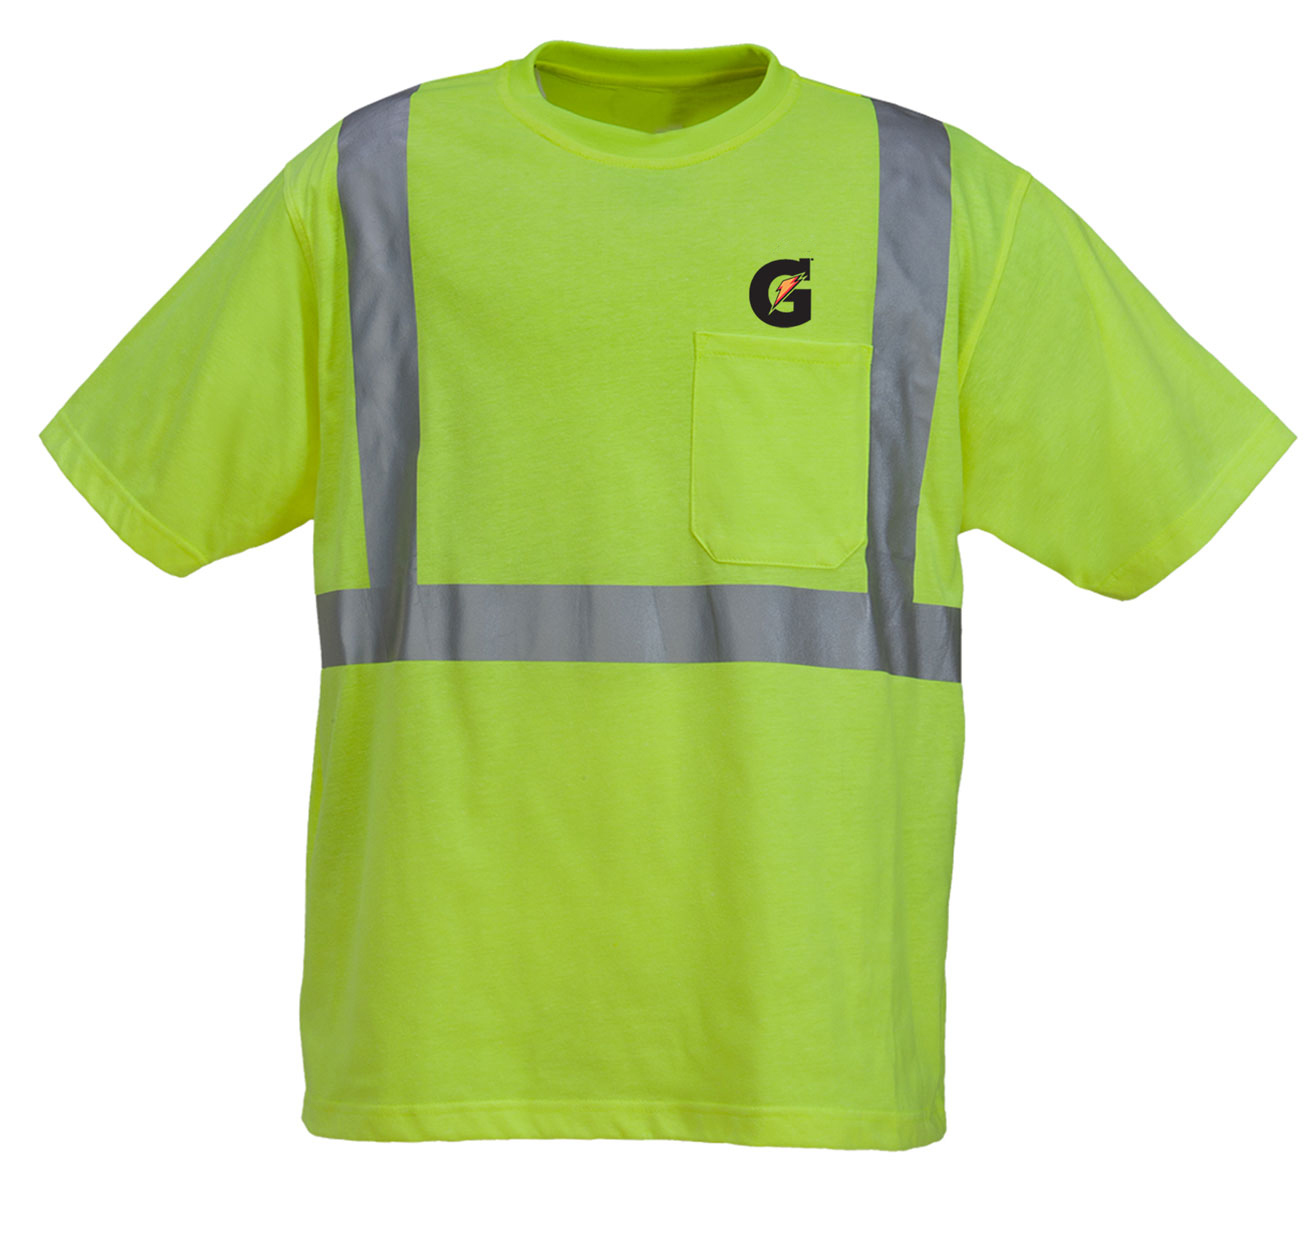 High Visibility Poly Cotton Knitted Jersey T Shirt With